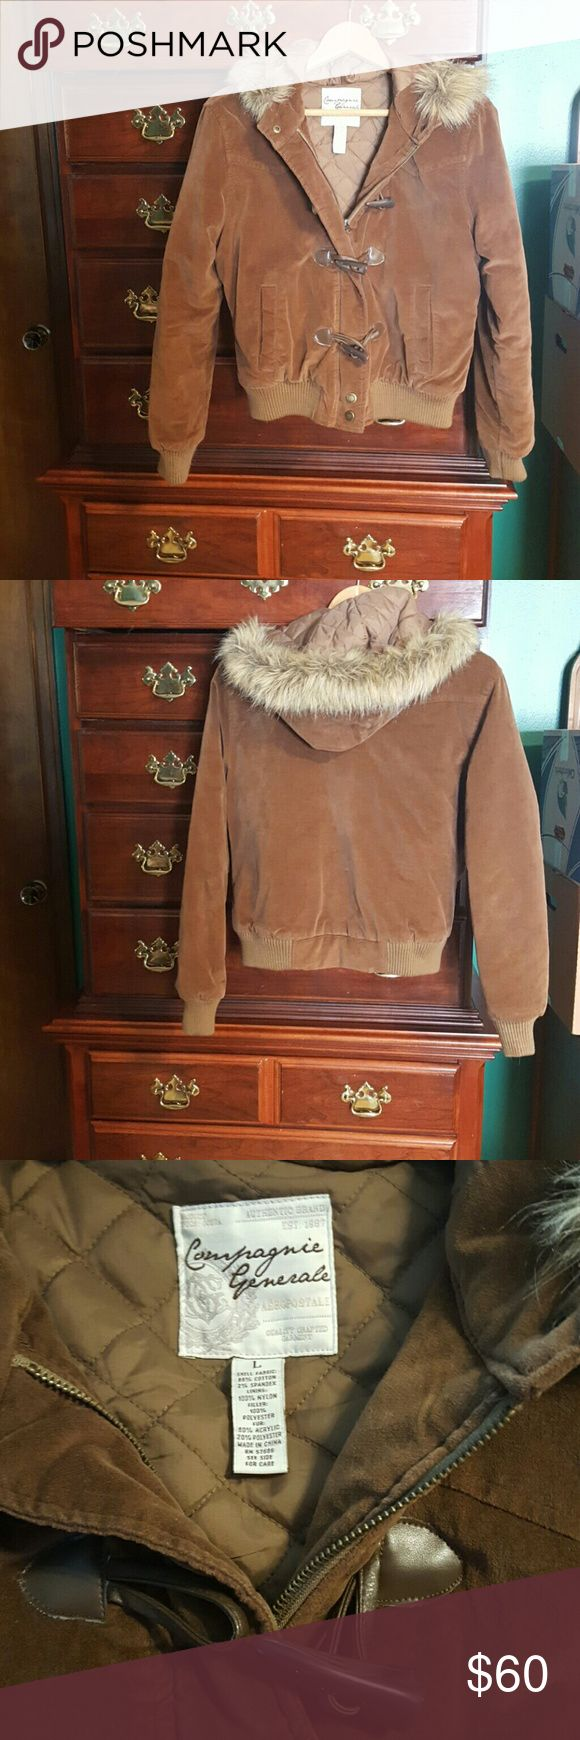 padded bomber jacket with fur trimmed hood Super warm winter coat in the style of a bomber jacket.  Padded, lined interior, soft suede-like exterior.  The hood is trimmed with soft faux fur. In perfect condition.  I'm honestly not sure it was ever worn. Aeropostale Jackets & Coats Puffers